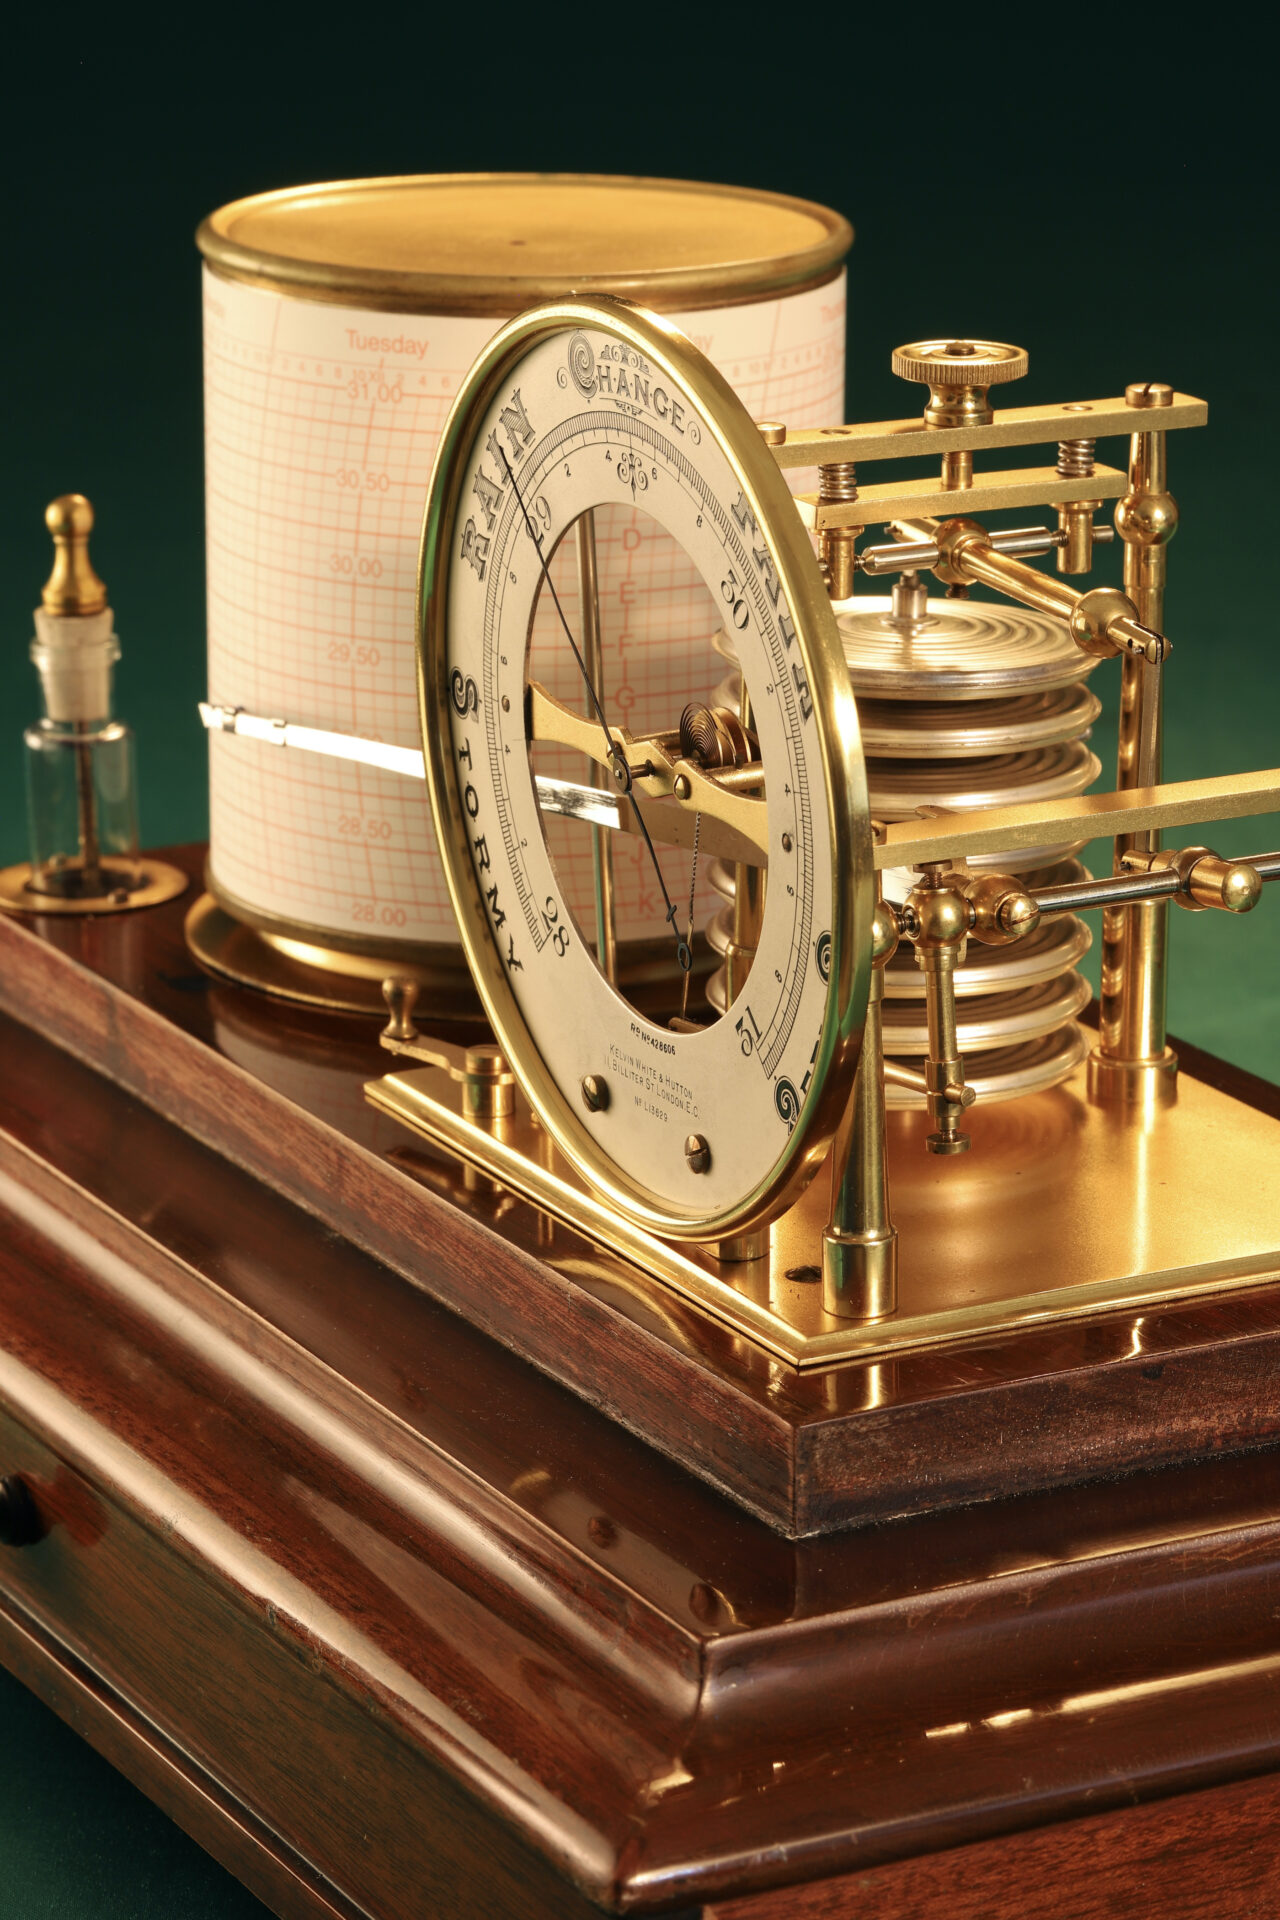 Image of Short & Mason Barograph No L13629 c1930 taken from righthand side with lid removed